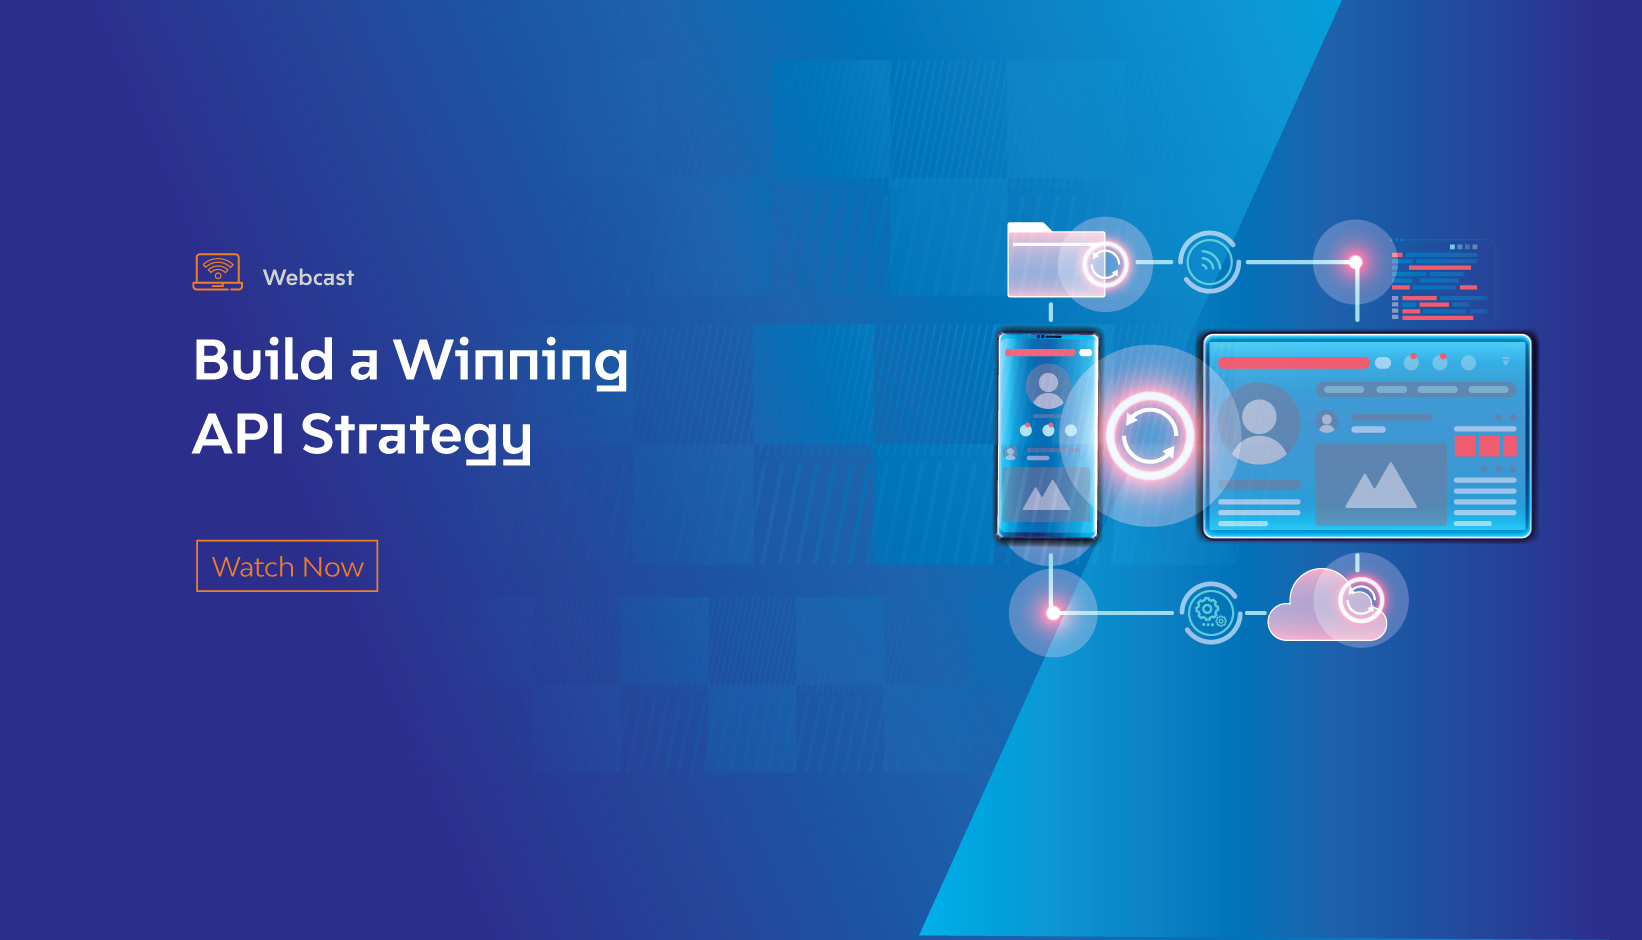 Webcast: Build a Winning API Strategy